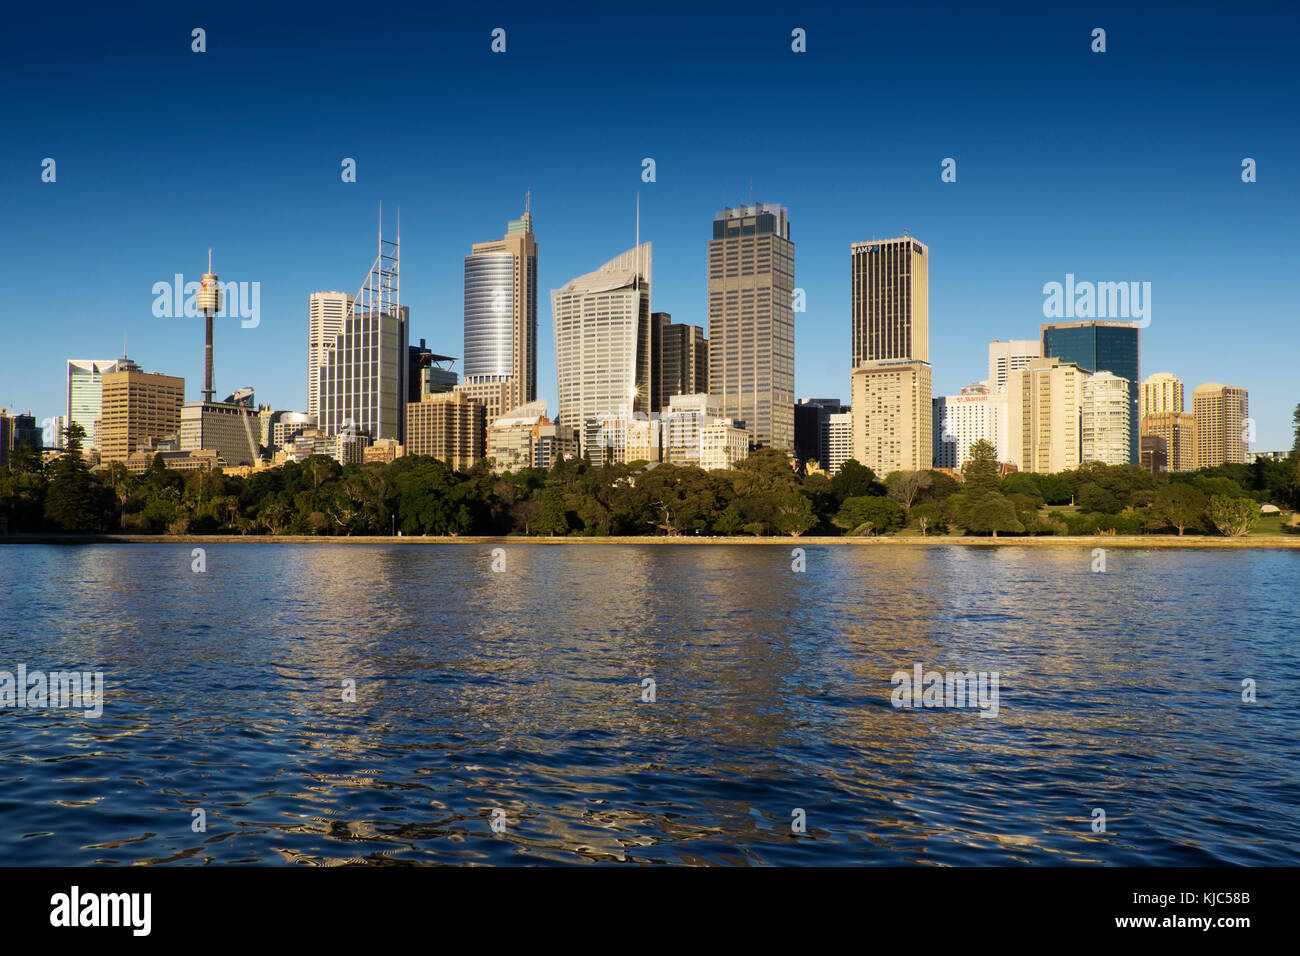 Sydney Harbour and skyline of the Central Business District in Sydney, Australia - Stock Image